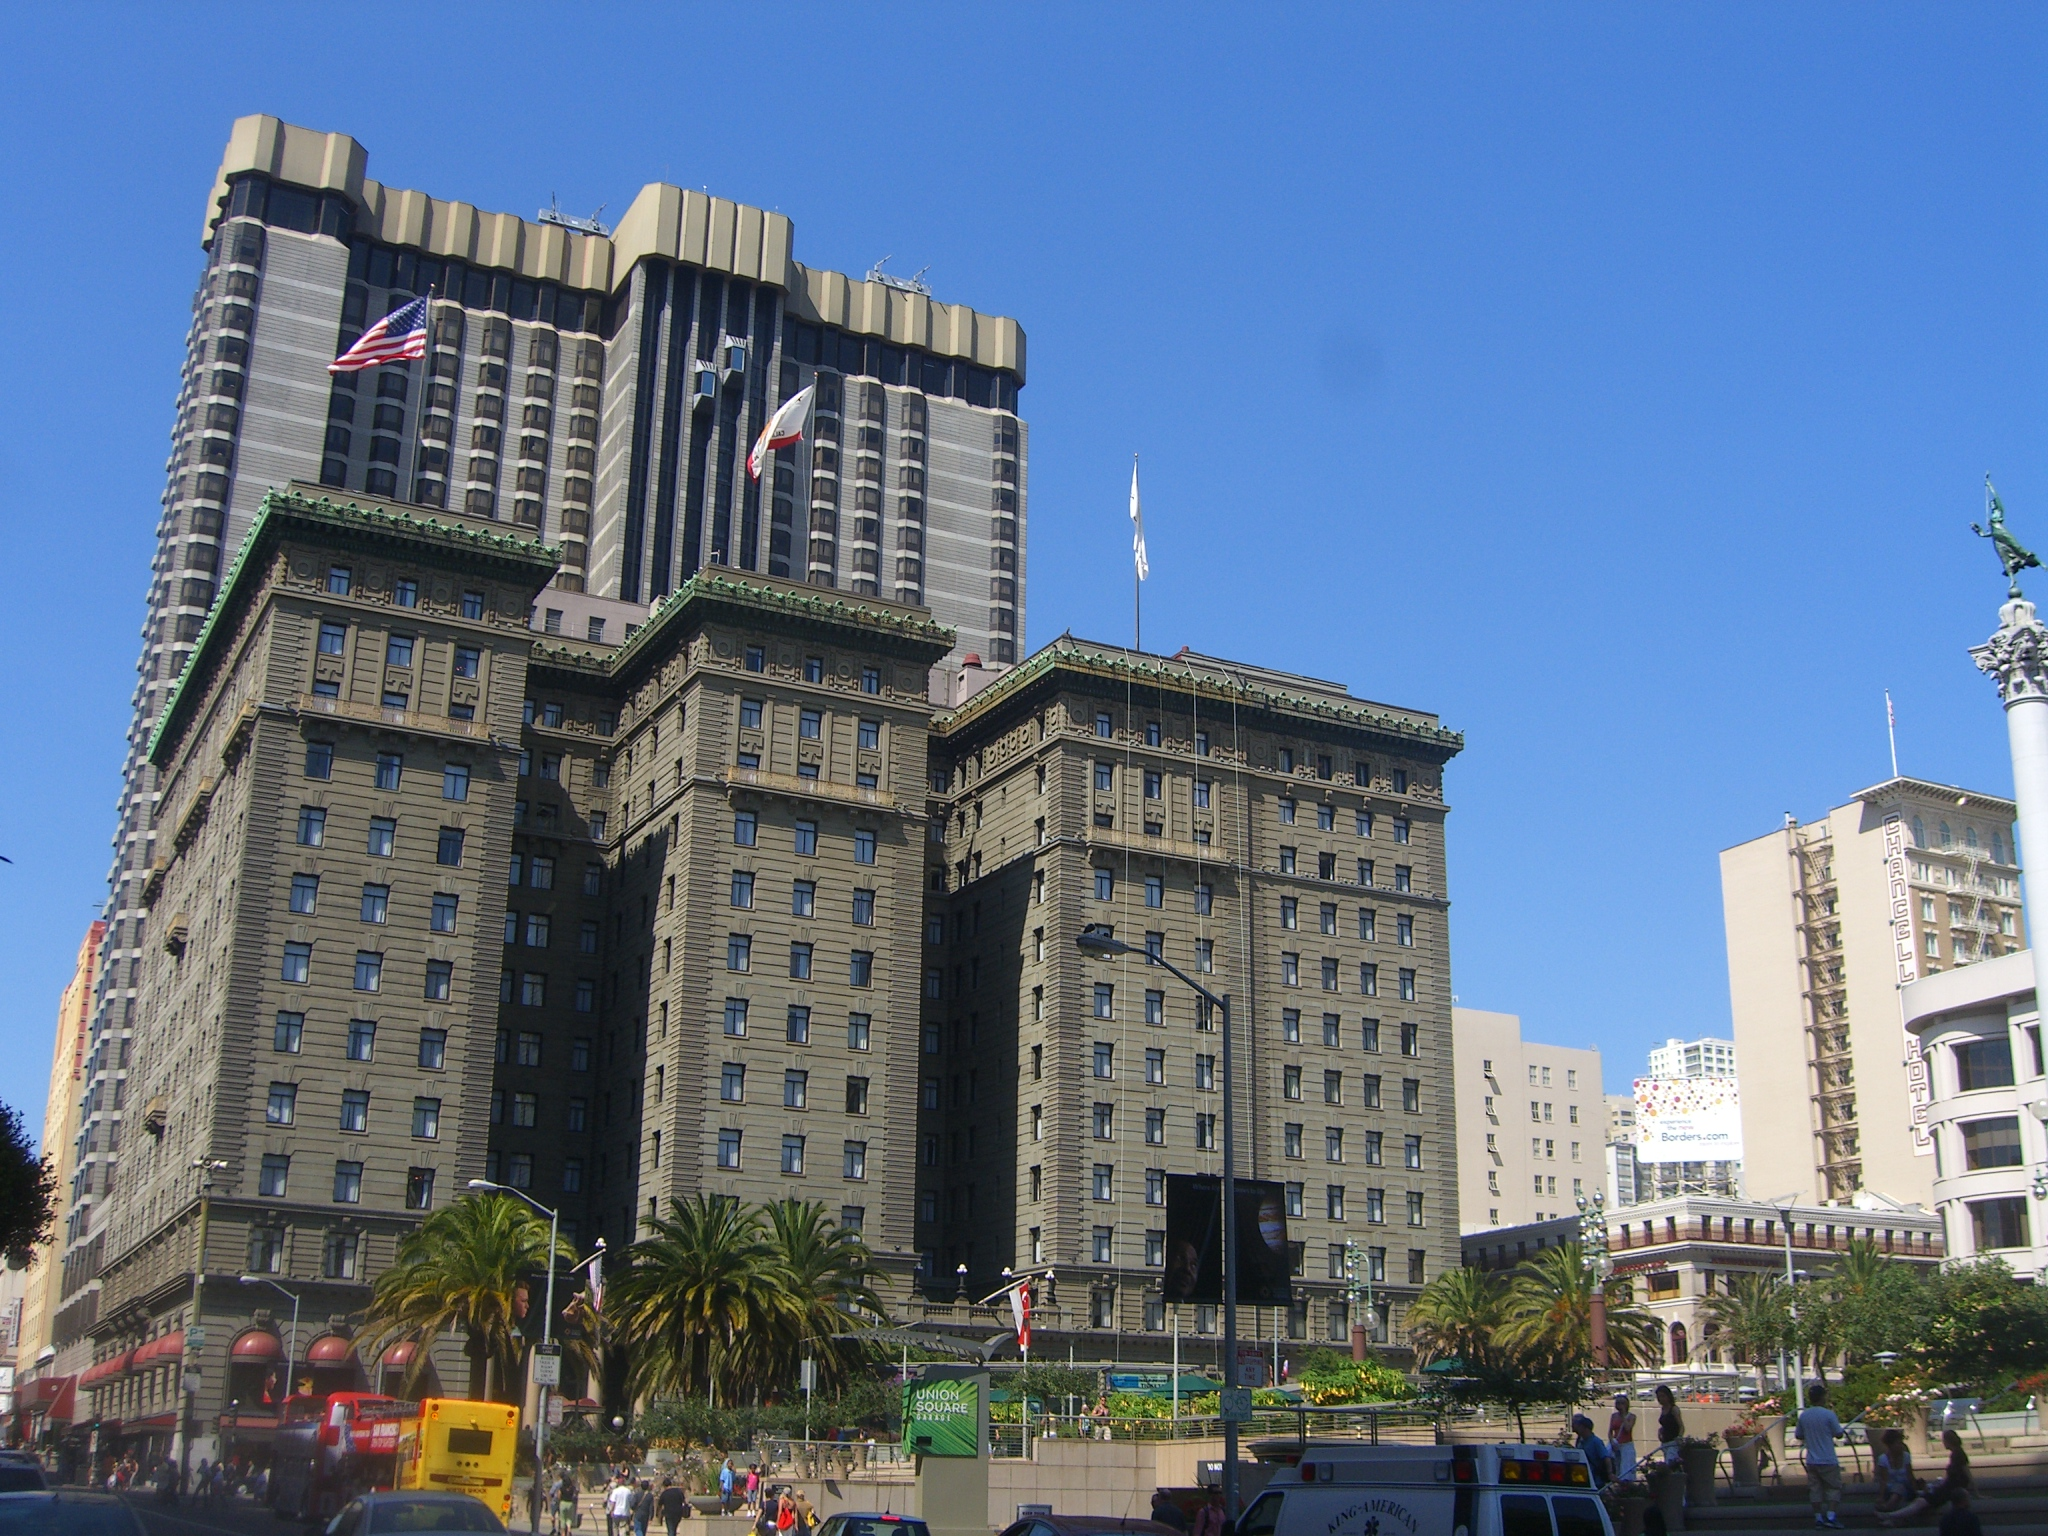 The Westin St Francis Hotel